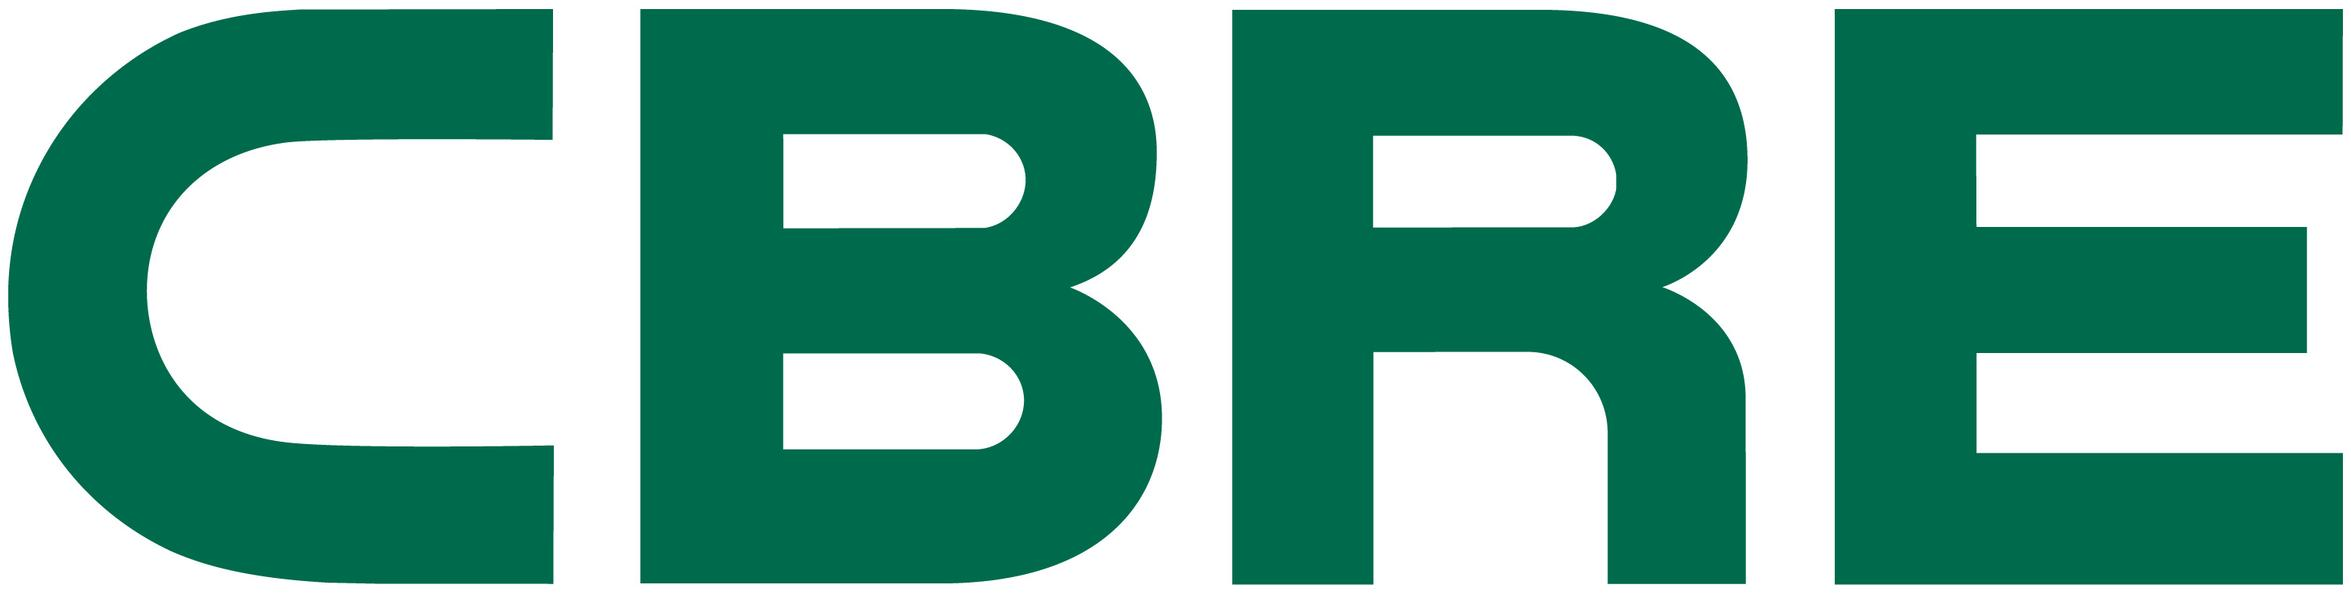 CBRE Recognized For Top Customer References, Innovation And